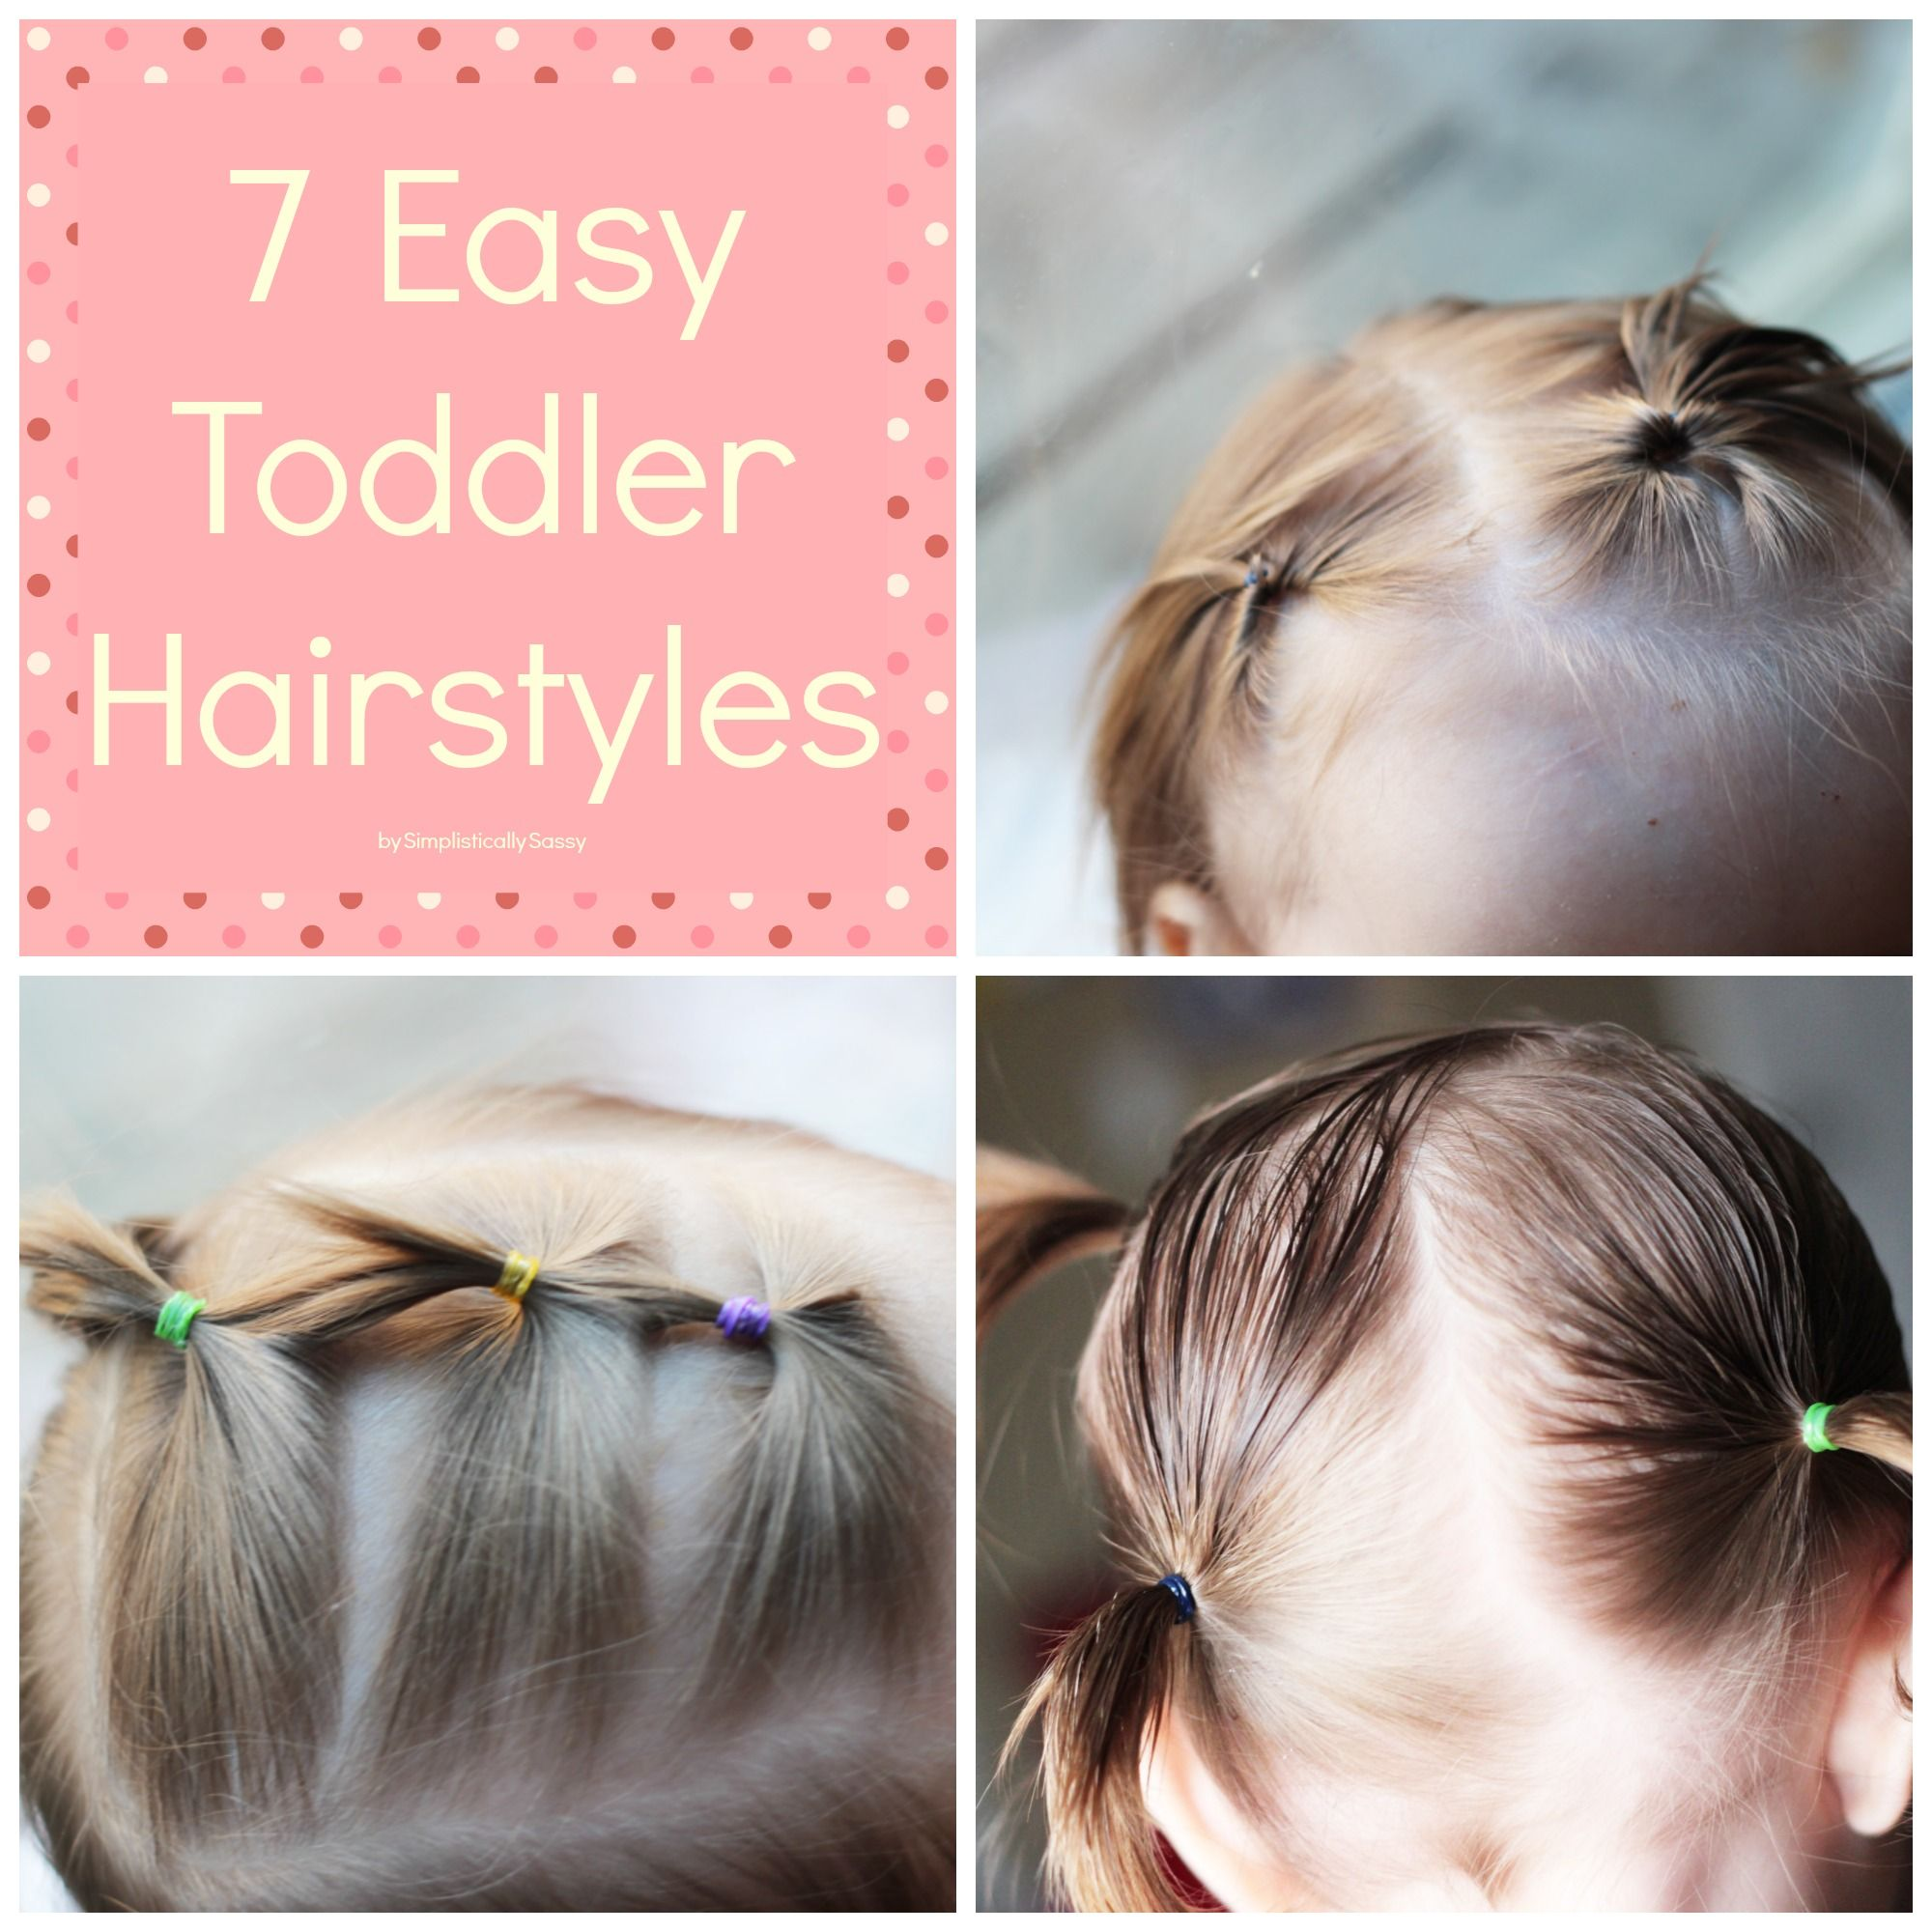 Easy Toddler Hairstyles by